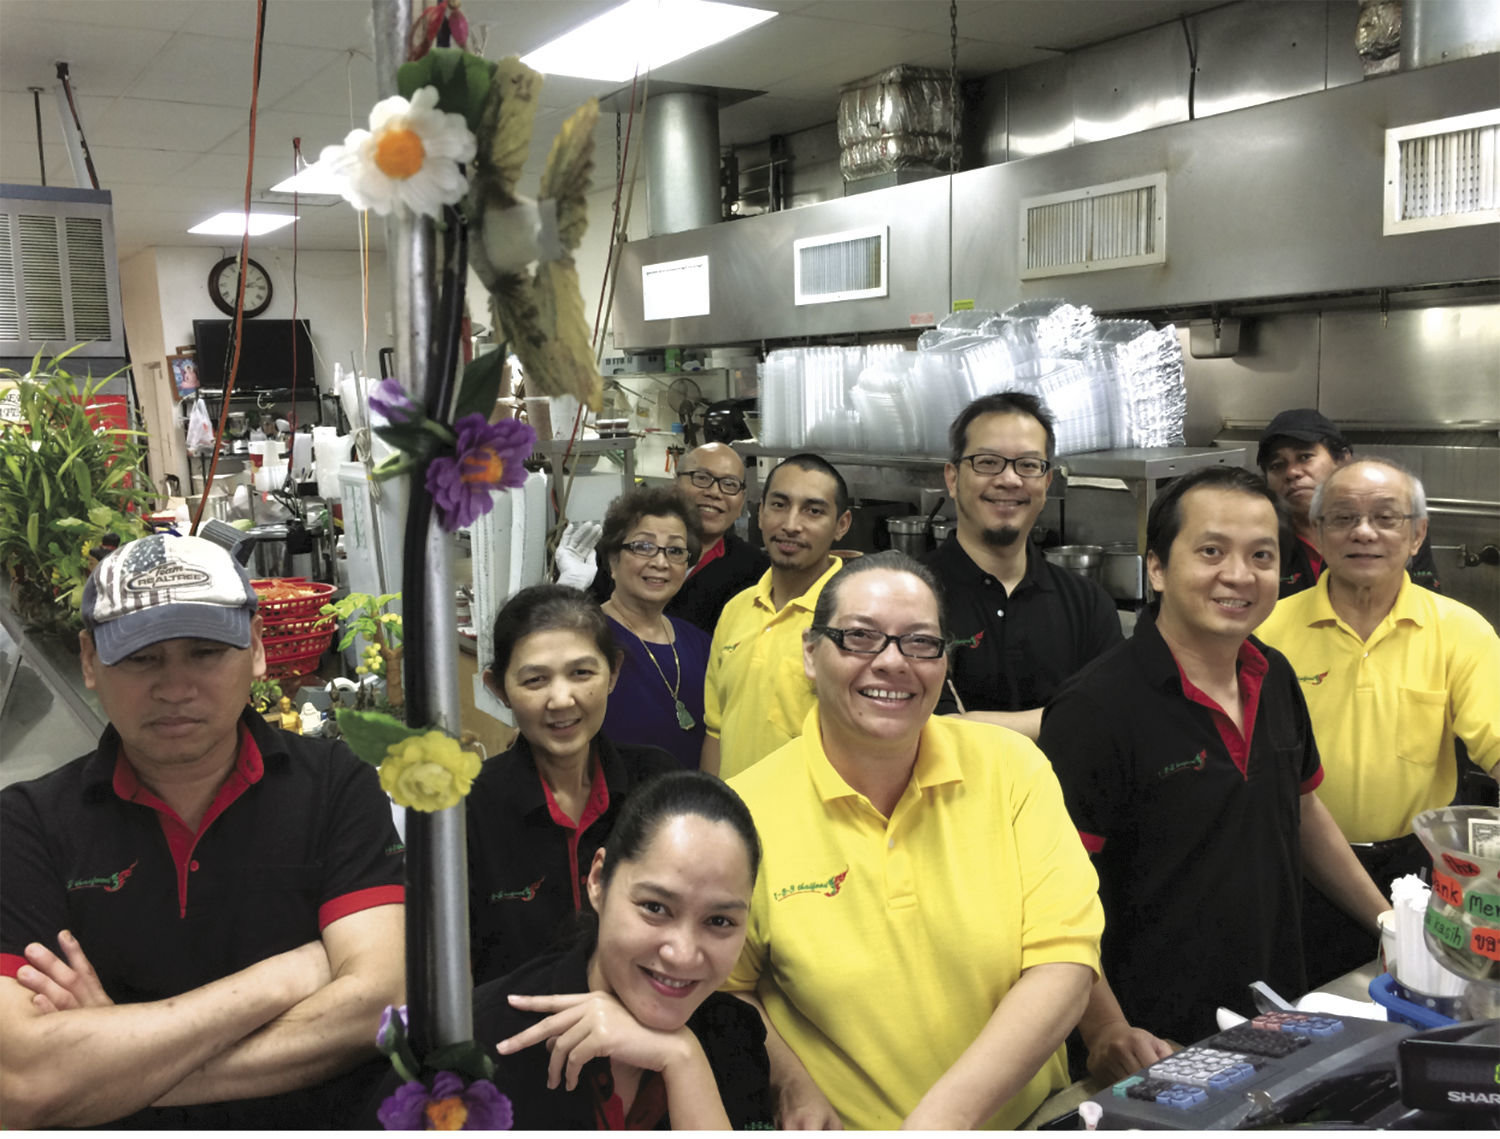 The team at 123 Thai in Port Townsend appreciate people who rated the Port Townsend business as the city's best Asian restaurant. The crew includes Eddie and Jenny Chenruk, Charlie, Chuck, Christa, Sawat, Amonphong, Poo, Christian, Jose and Boon.